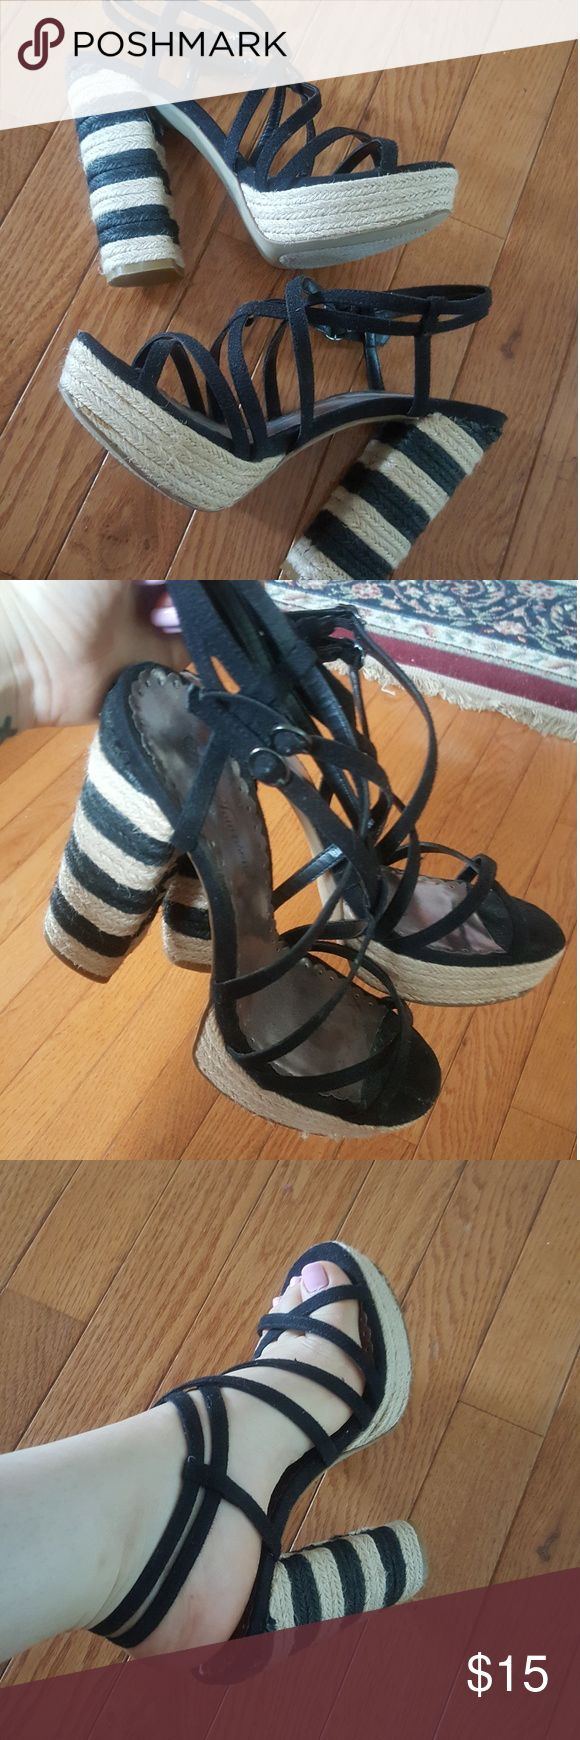 Striped strappy heels Condition: like new! Worn once. Great for summer with maxi dress, dresses, skirts, jeans, shorts... on the boardwalk!! Very cute and fun. 5.25 inches with 1.25in platform. Lulu Townsend Shoes Sandals